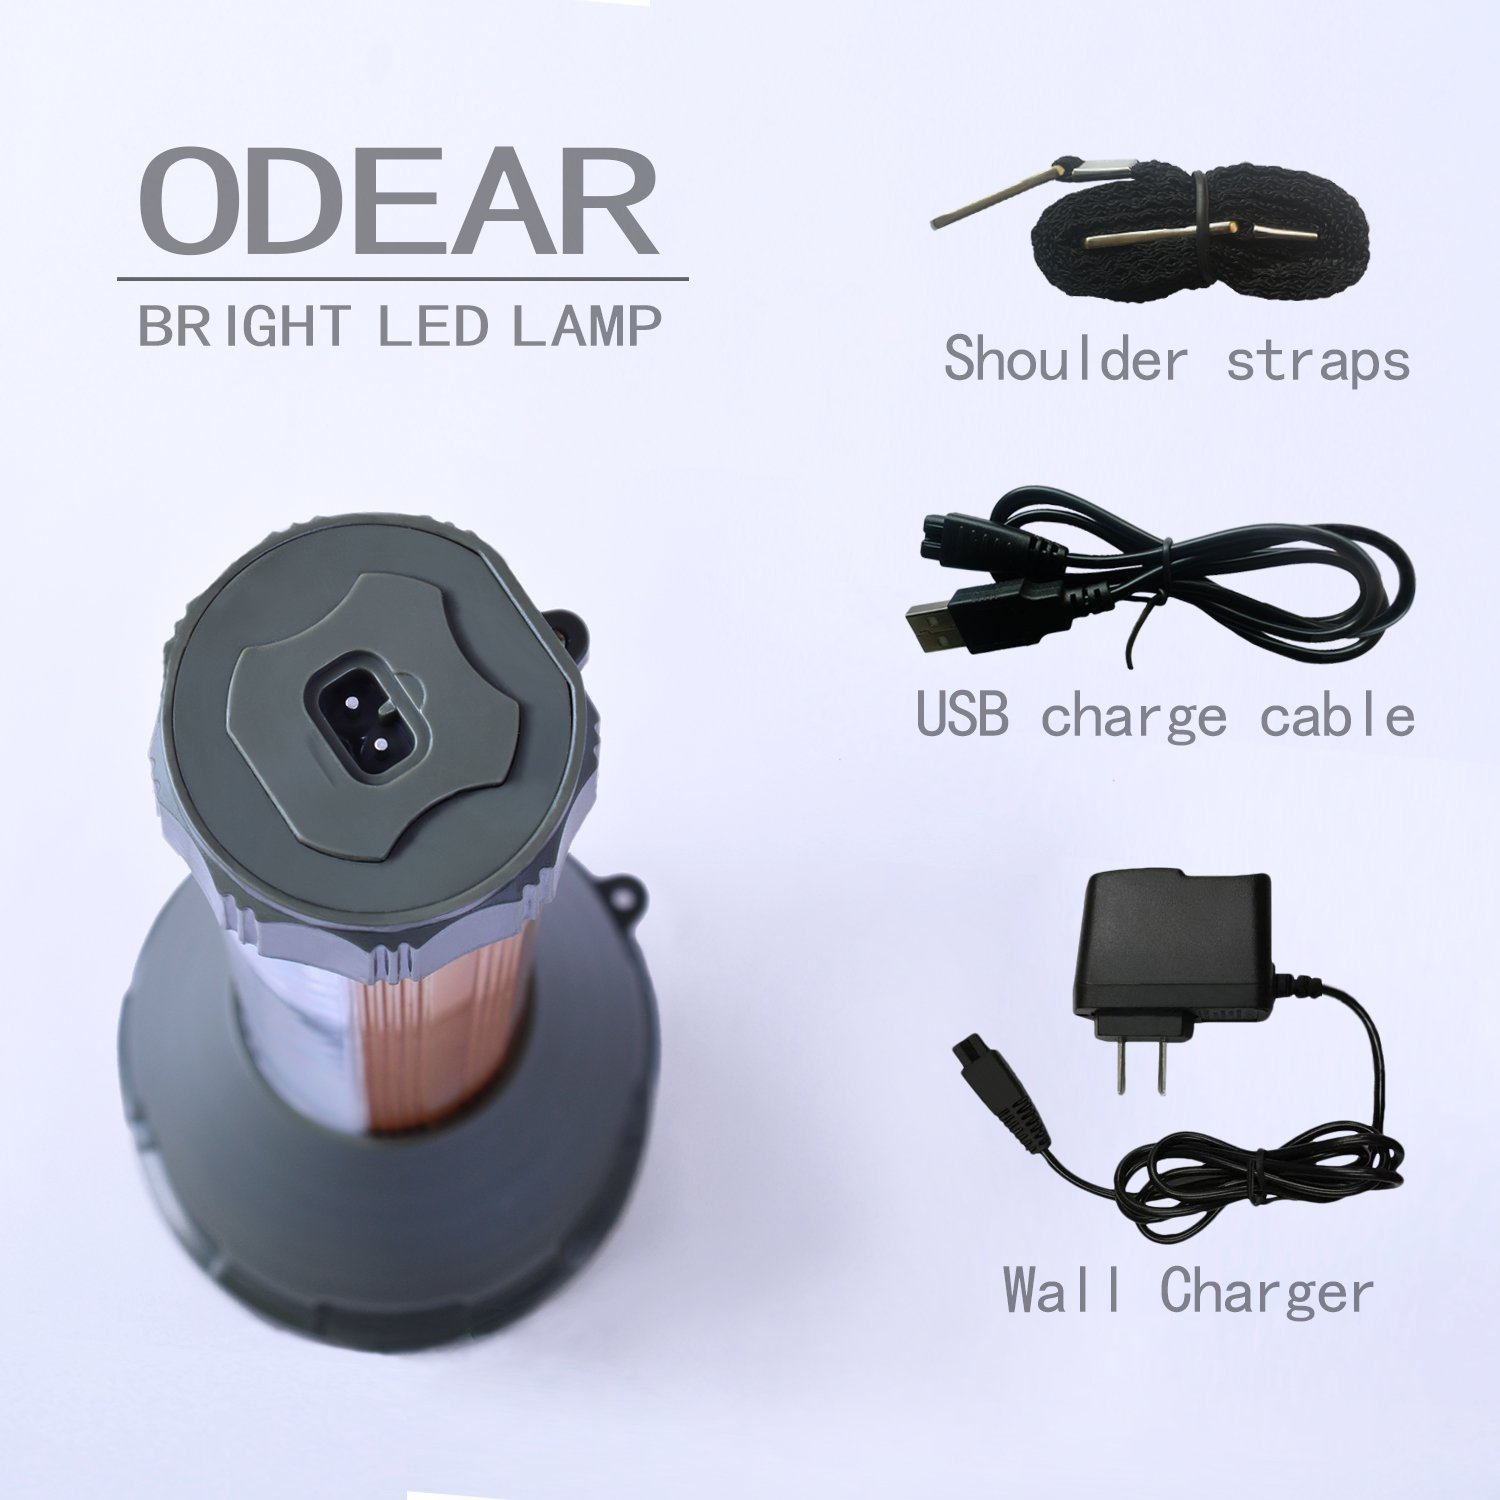 Odear/ Very Bright/ Large Flashlight Multi-function/ Digital/ LED Spotlight/ Rechargeable Outdoor Searchlight for/ Home/ Camping/ Reading/ Party/ Hunting/ Fishing Walking Dog Search